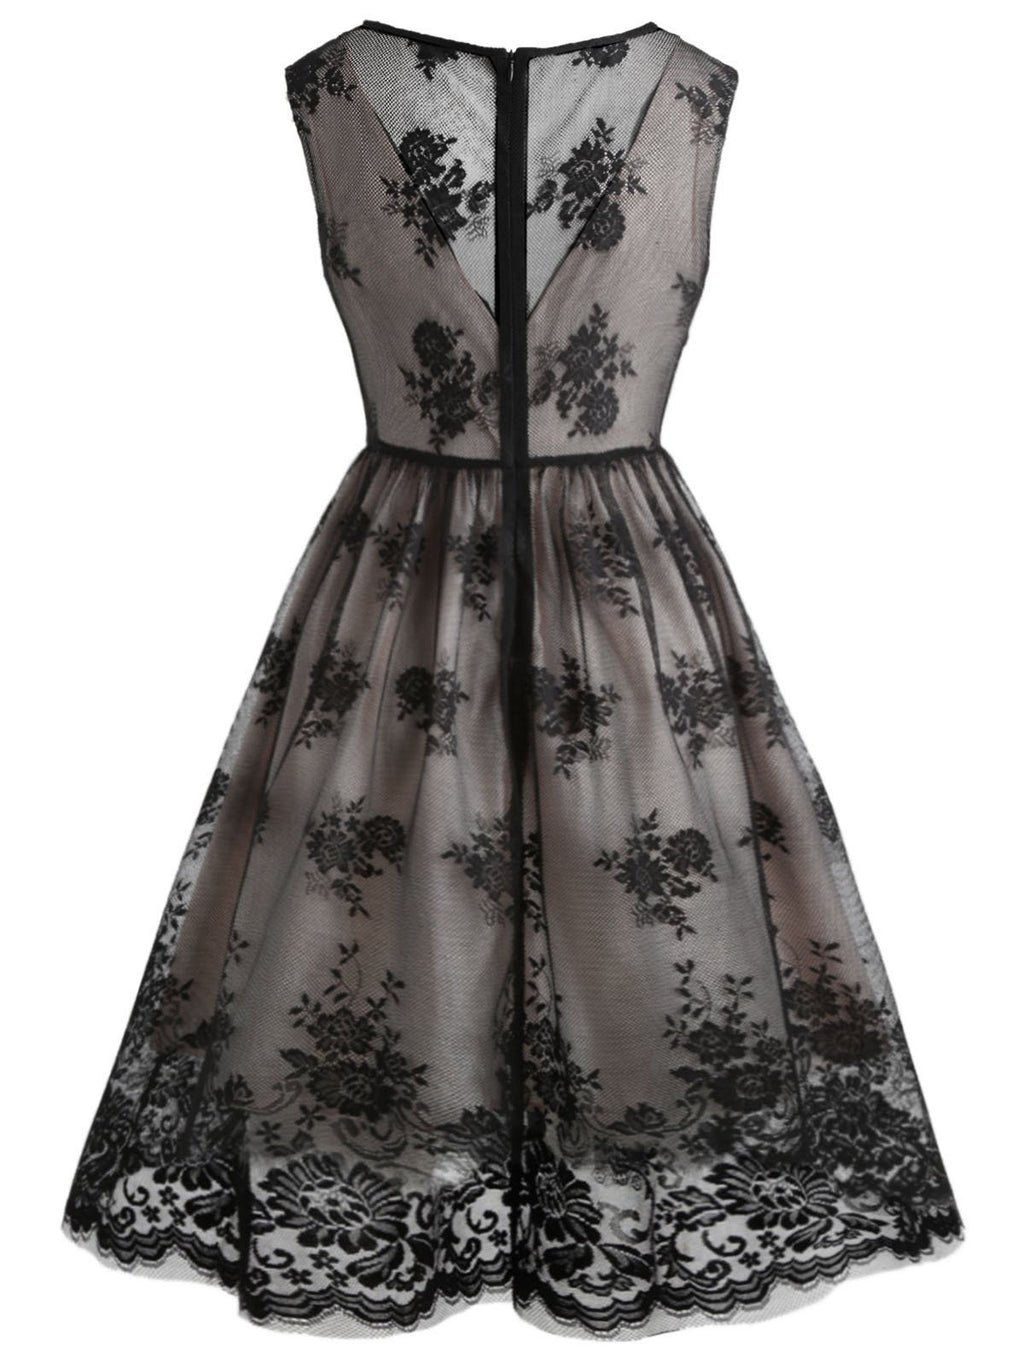 Black 1950s Lace Floral Swing Dress